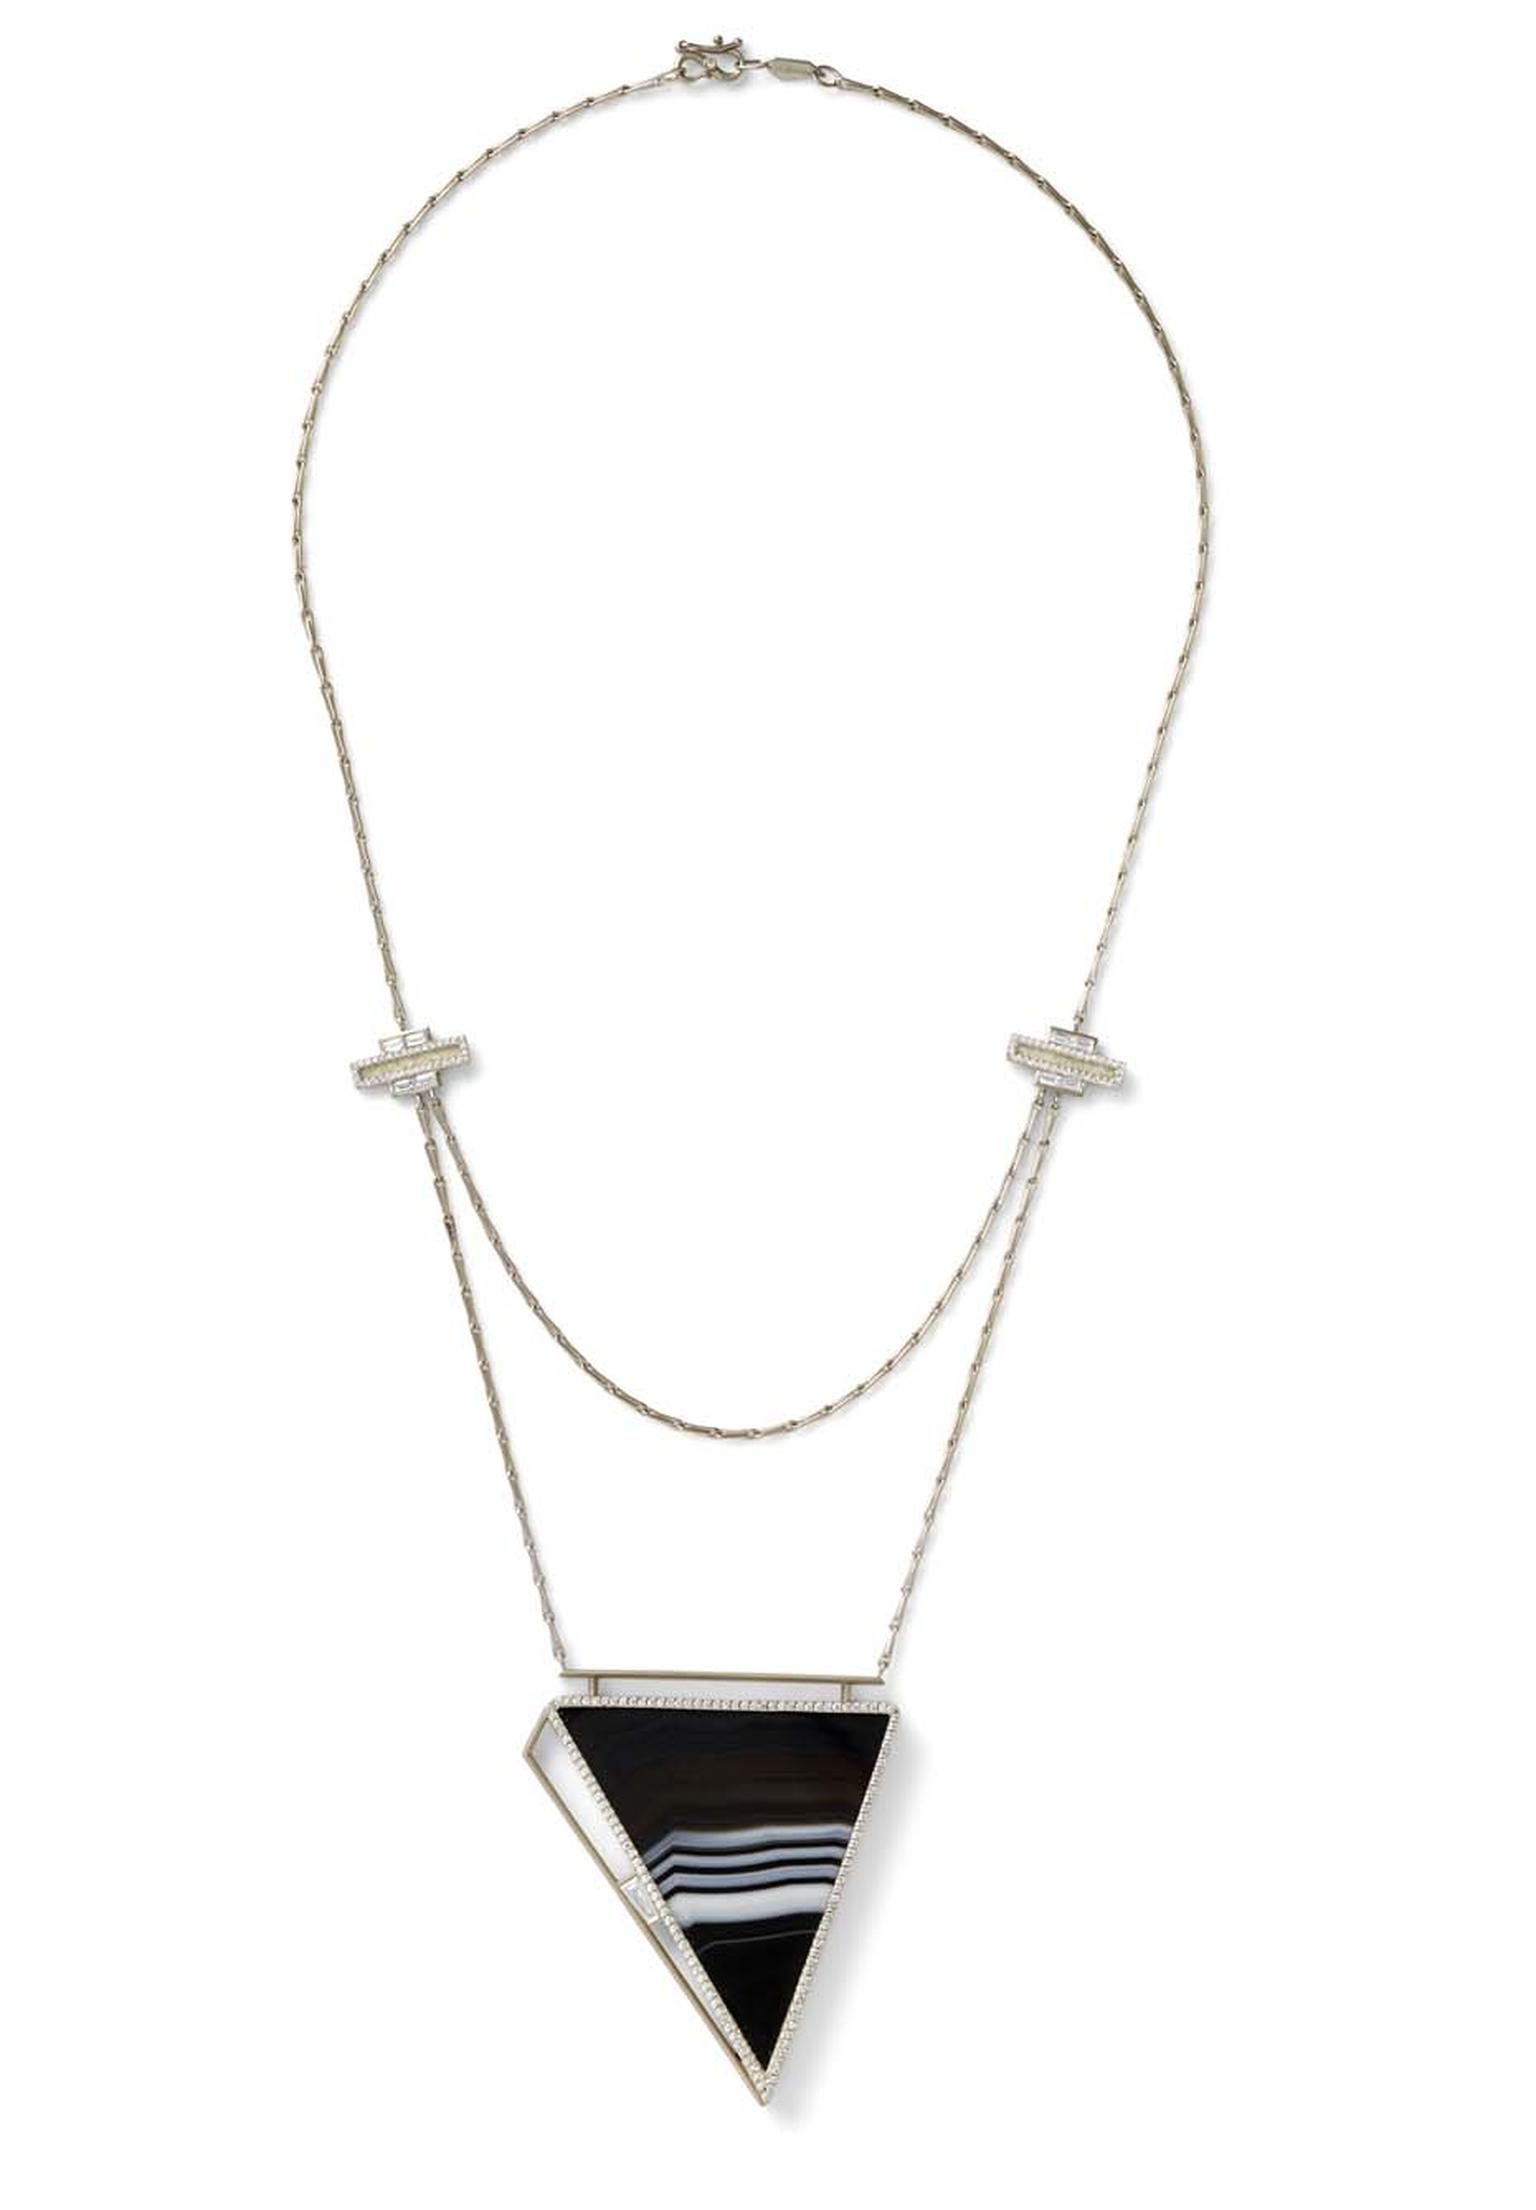 Monique Péan one-of-a-kind Seto necklace with a triangle of fossilised walrus ivory and black striped agate surrounded by pavé diamonds and one baguette diamond. The double looped chain is highlighted with baguette and pavé diamonds at either side.